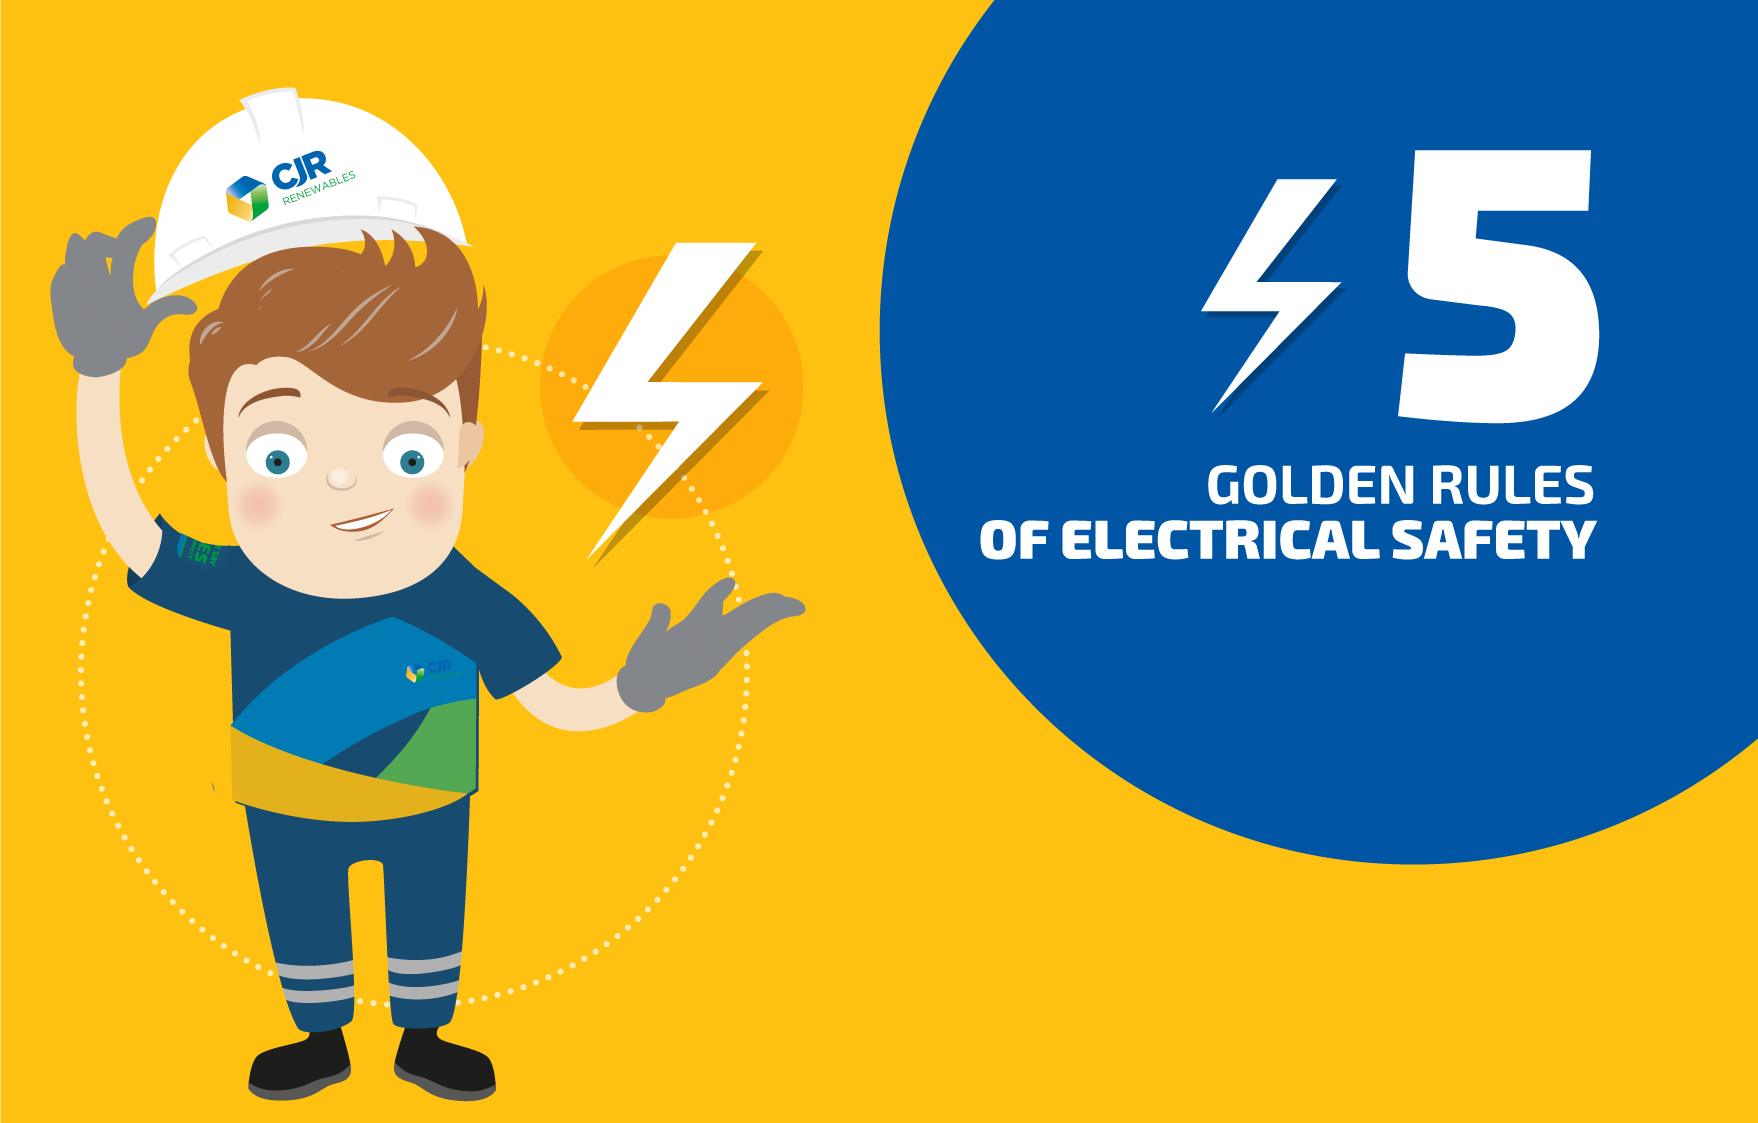 5 Golden Rules of Electrical Safety 0